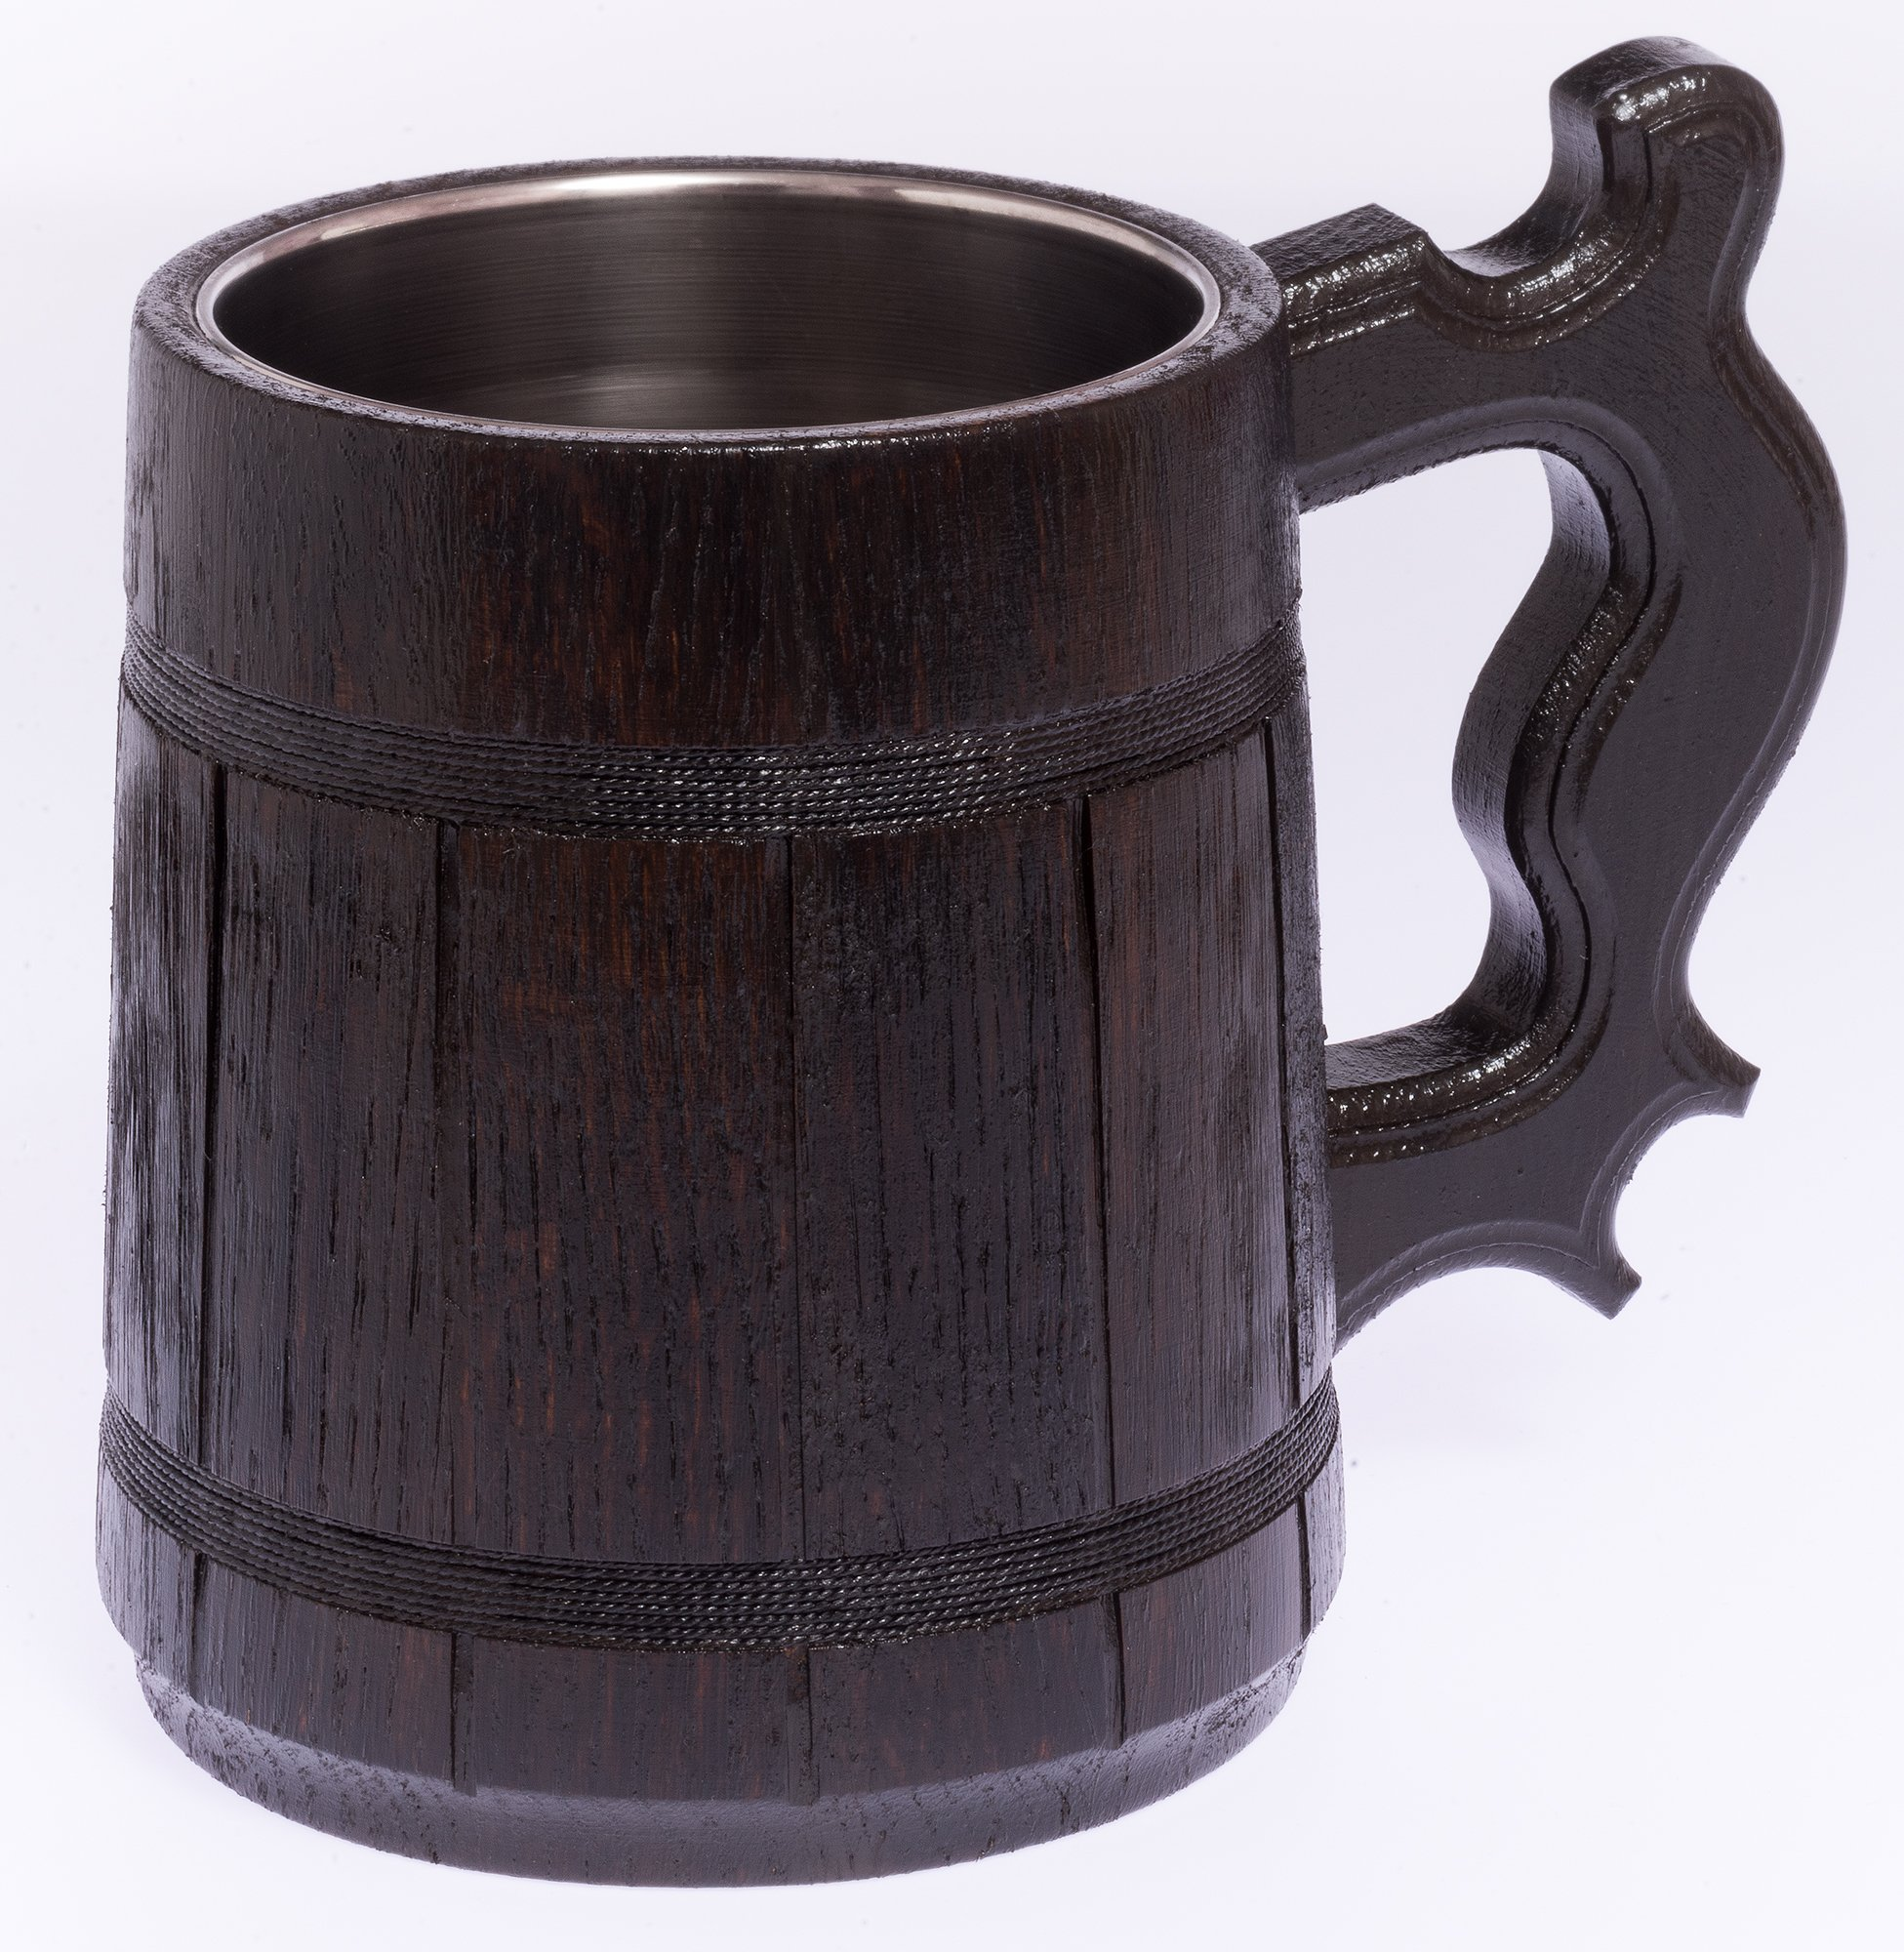 Beer Mug/Wooden Beer Mug/Tankard / Wood Mug By WoodenGifts - 0.6 Litres Or 20oz Wooden Mug - Wooden Coffee Mug with Stainless Steel Cup Inside by WoodenGifts (Image #2)